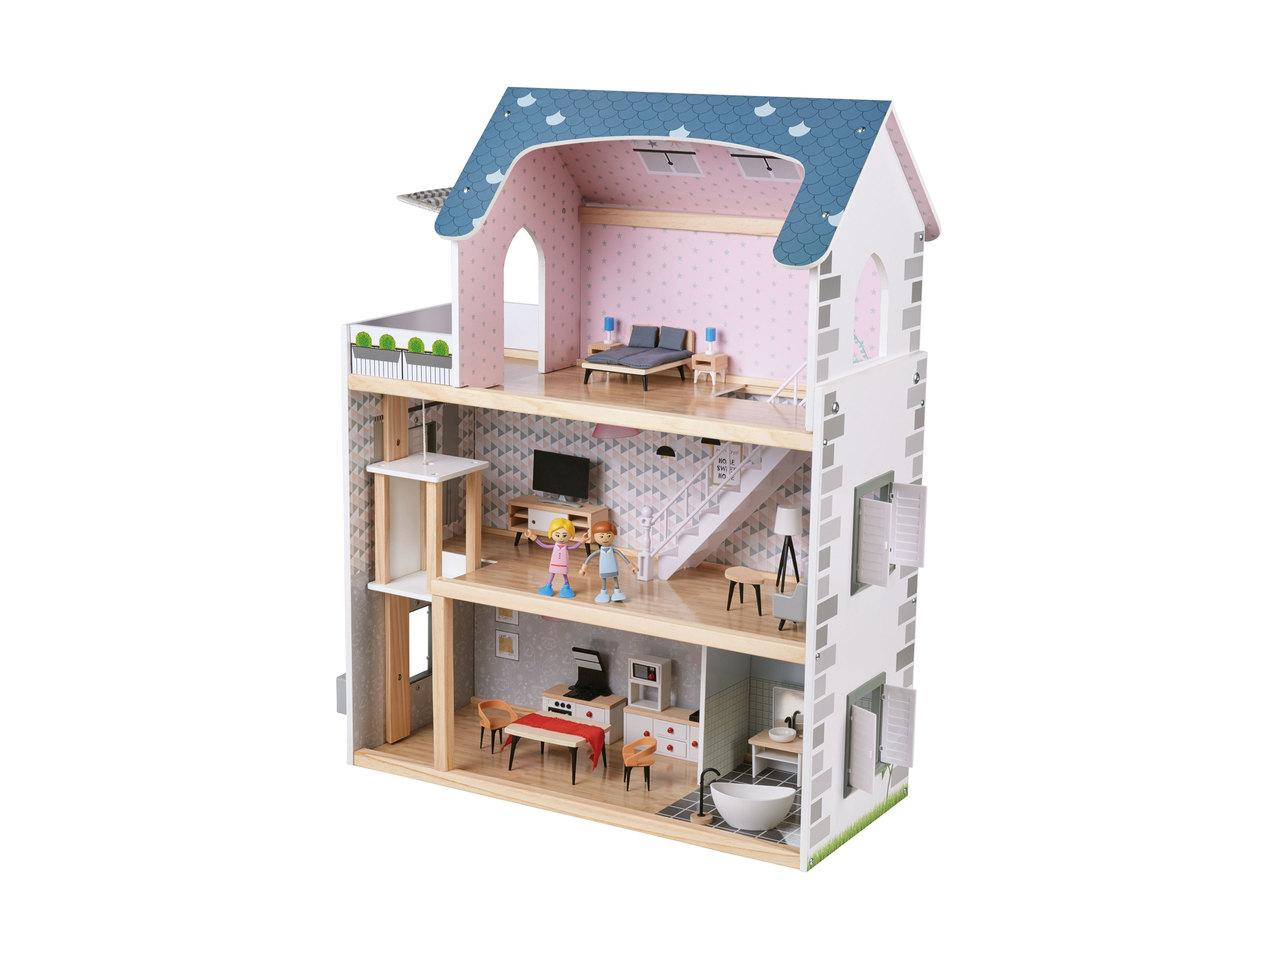 Playtive Küche Lidl Lidl S Wooden Toy Range Is Back And It Includes A 50 Kitchen And